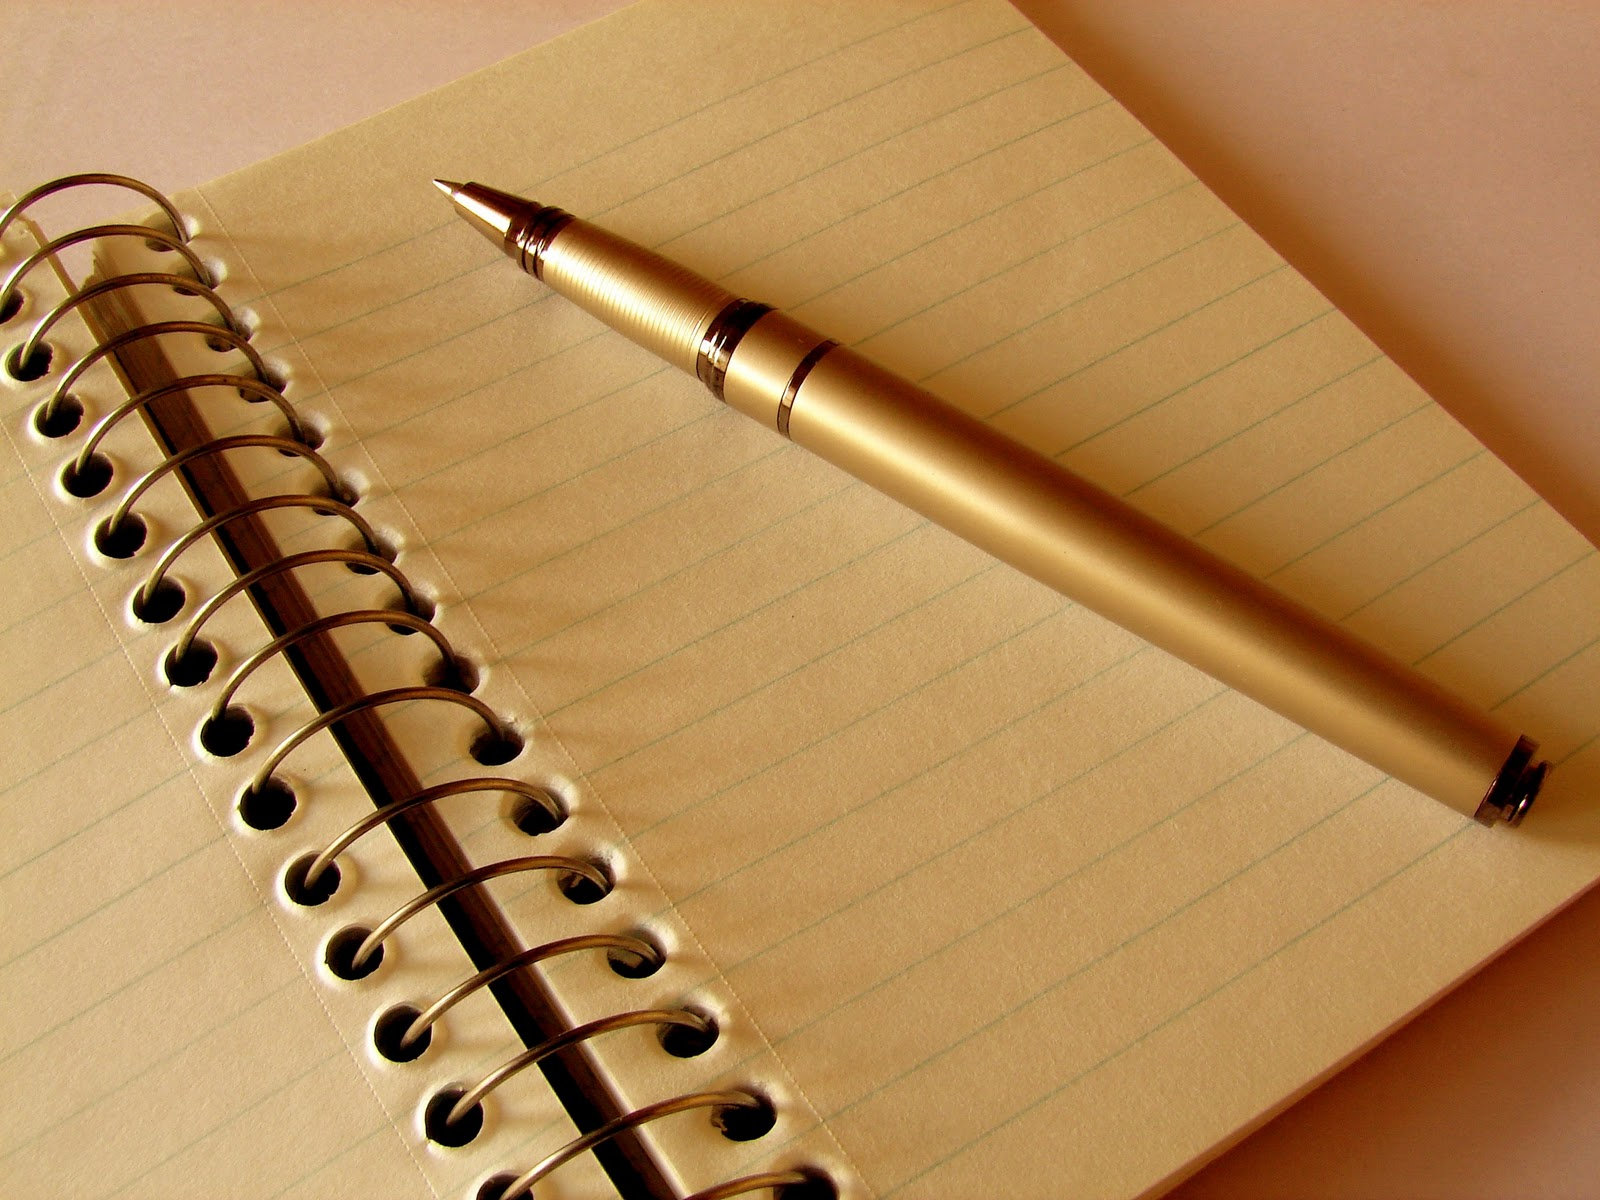 How to Write a Persuasive Letter